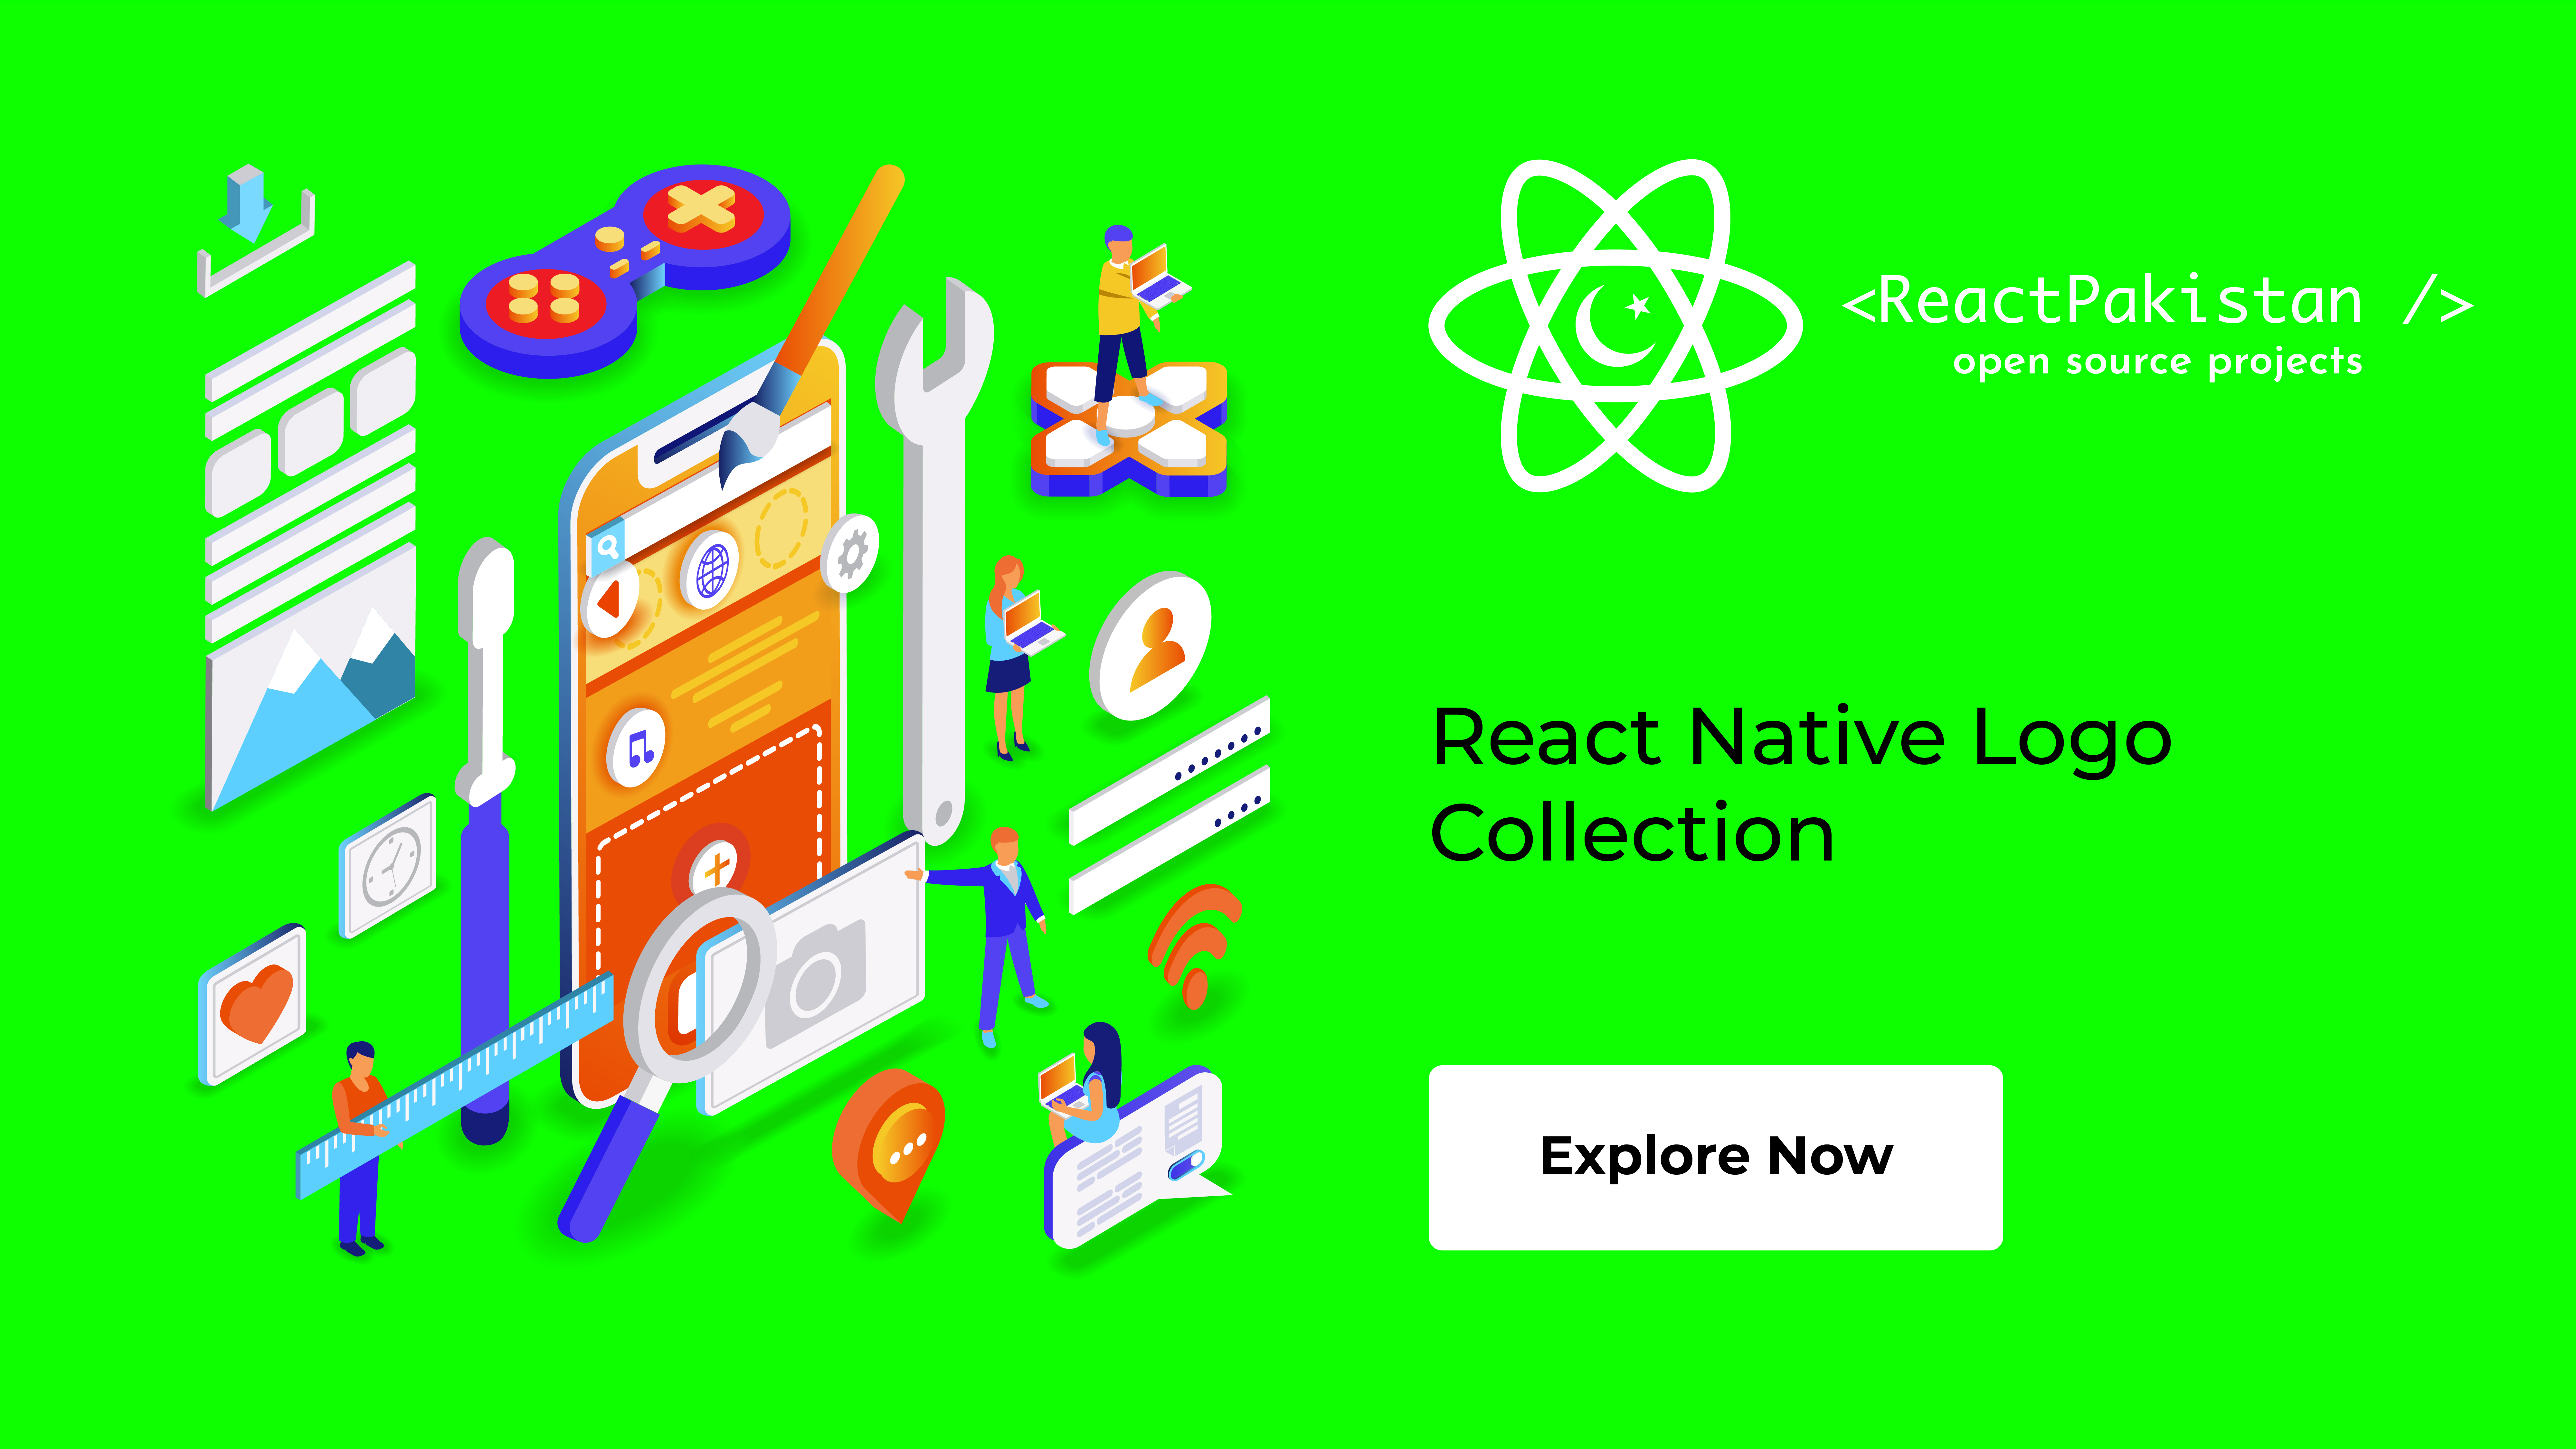 React Pakistan - React Native Logo Collection